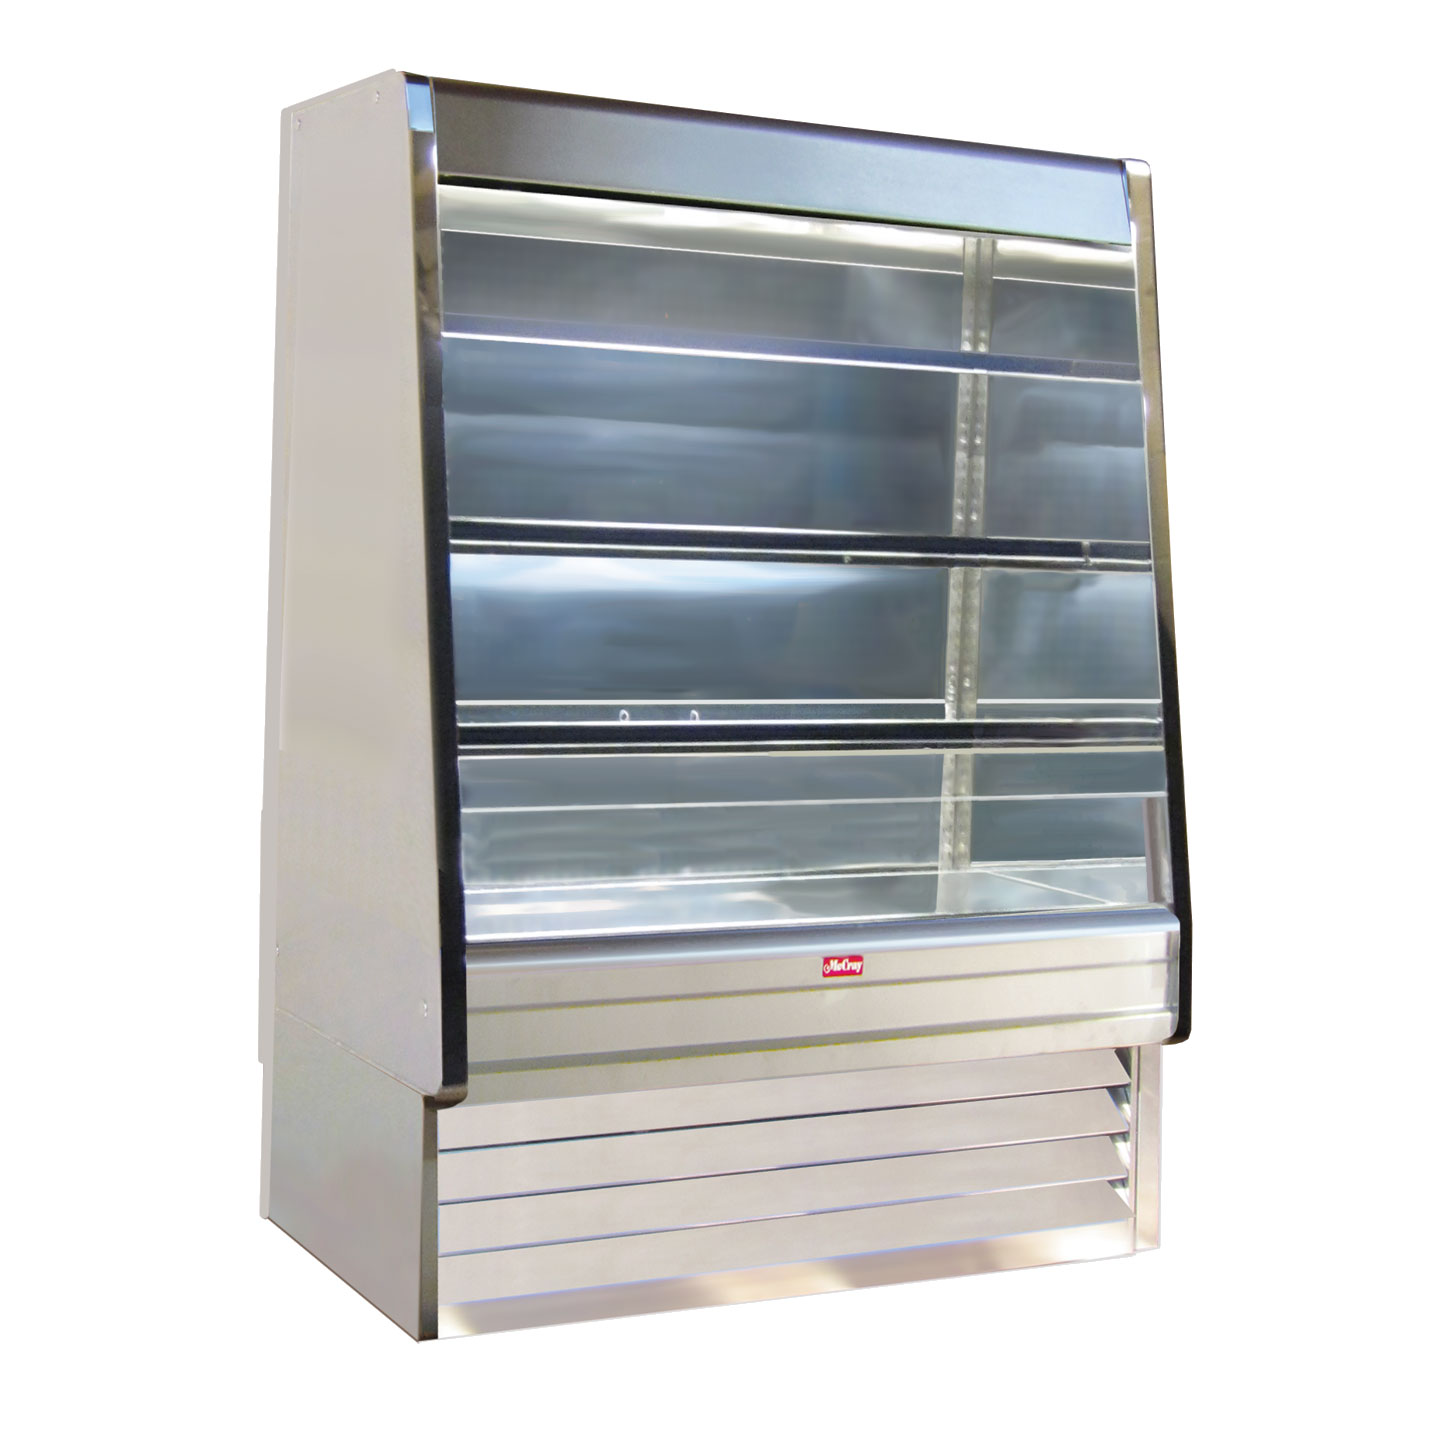 Howard-McCray SC-OD30E-3-S-LED merchandiser, open refrigerated display